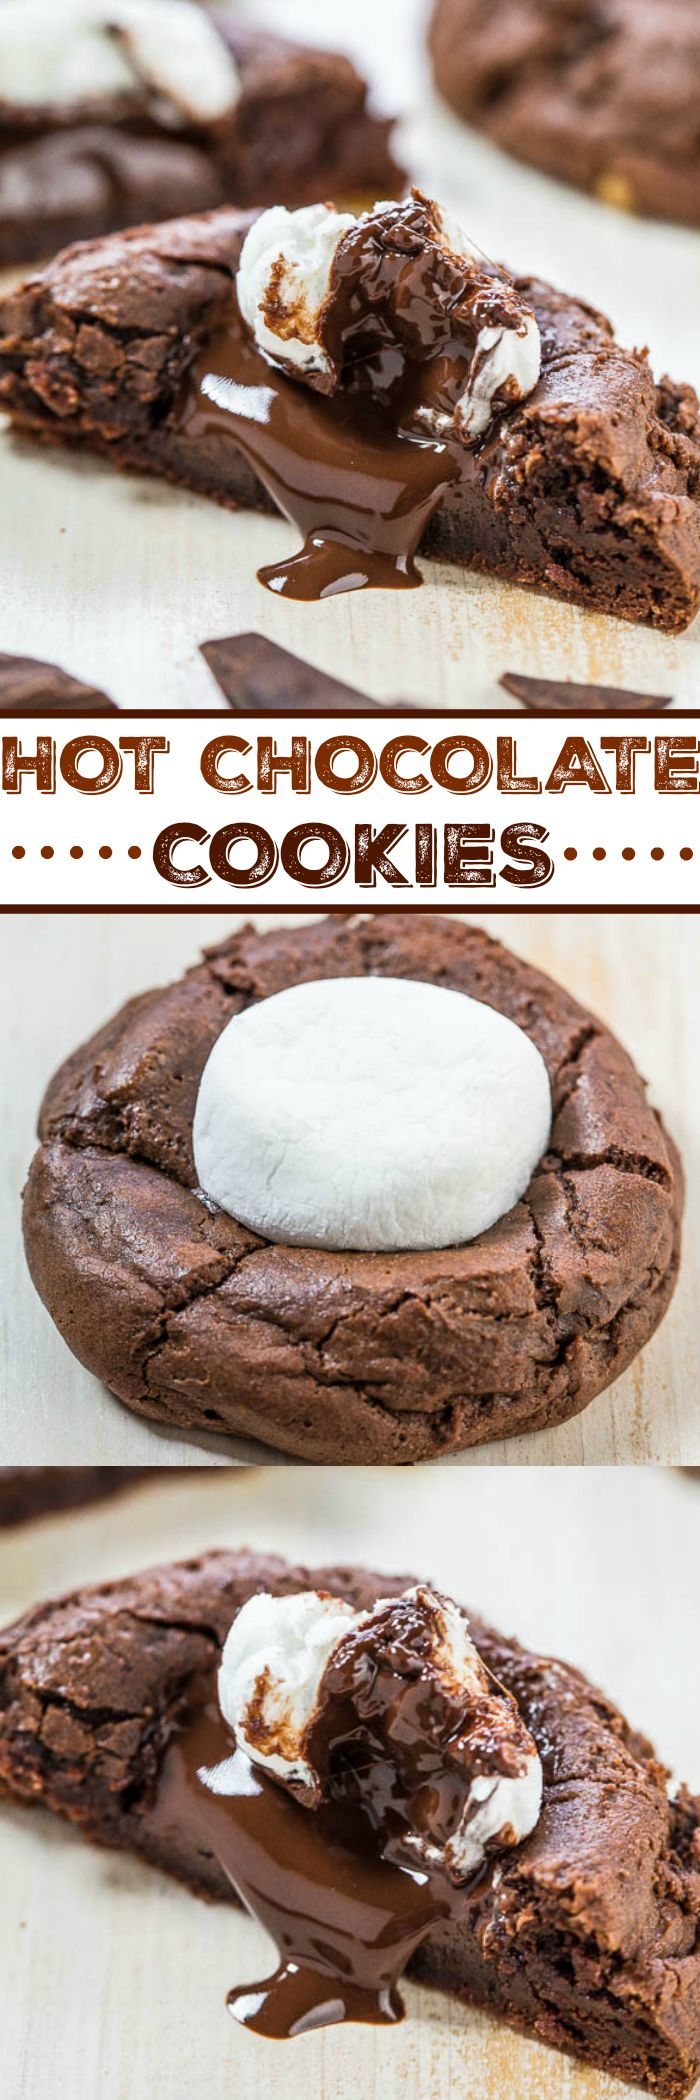 Hot Chocolate Cookies - Rich chocolate cookies topped with a hunk of melted dark chocolate.